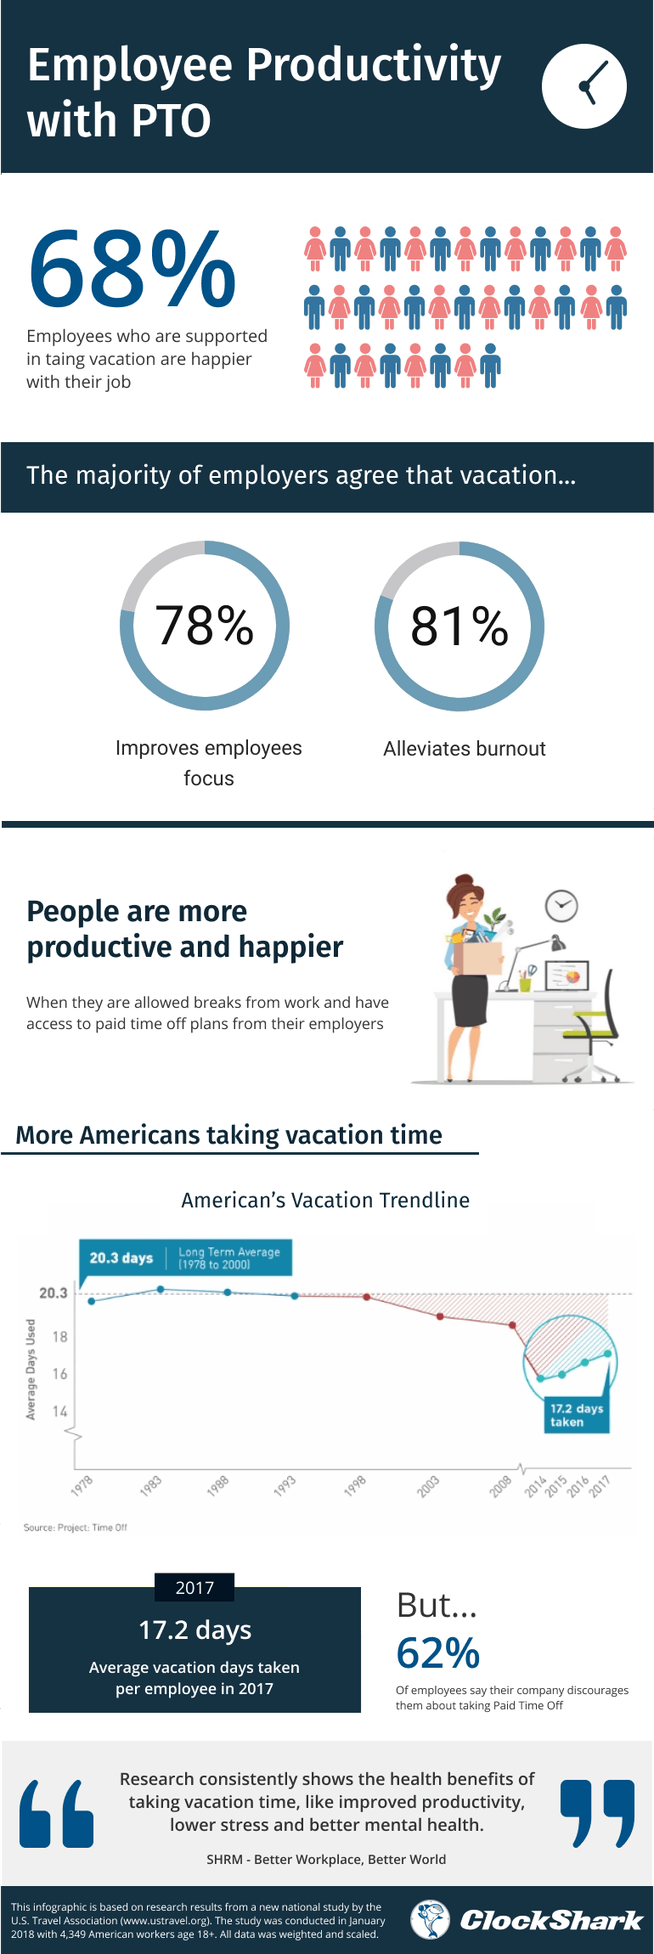 Employee Productivity with PTO